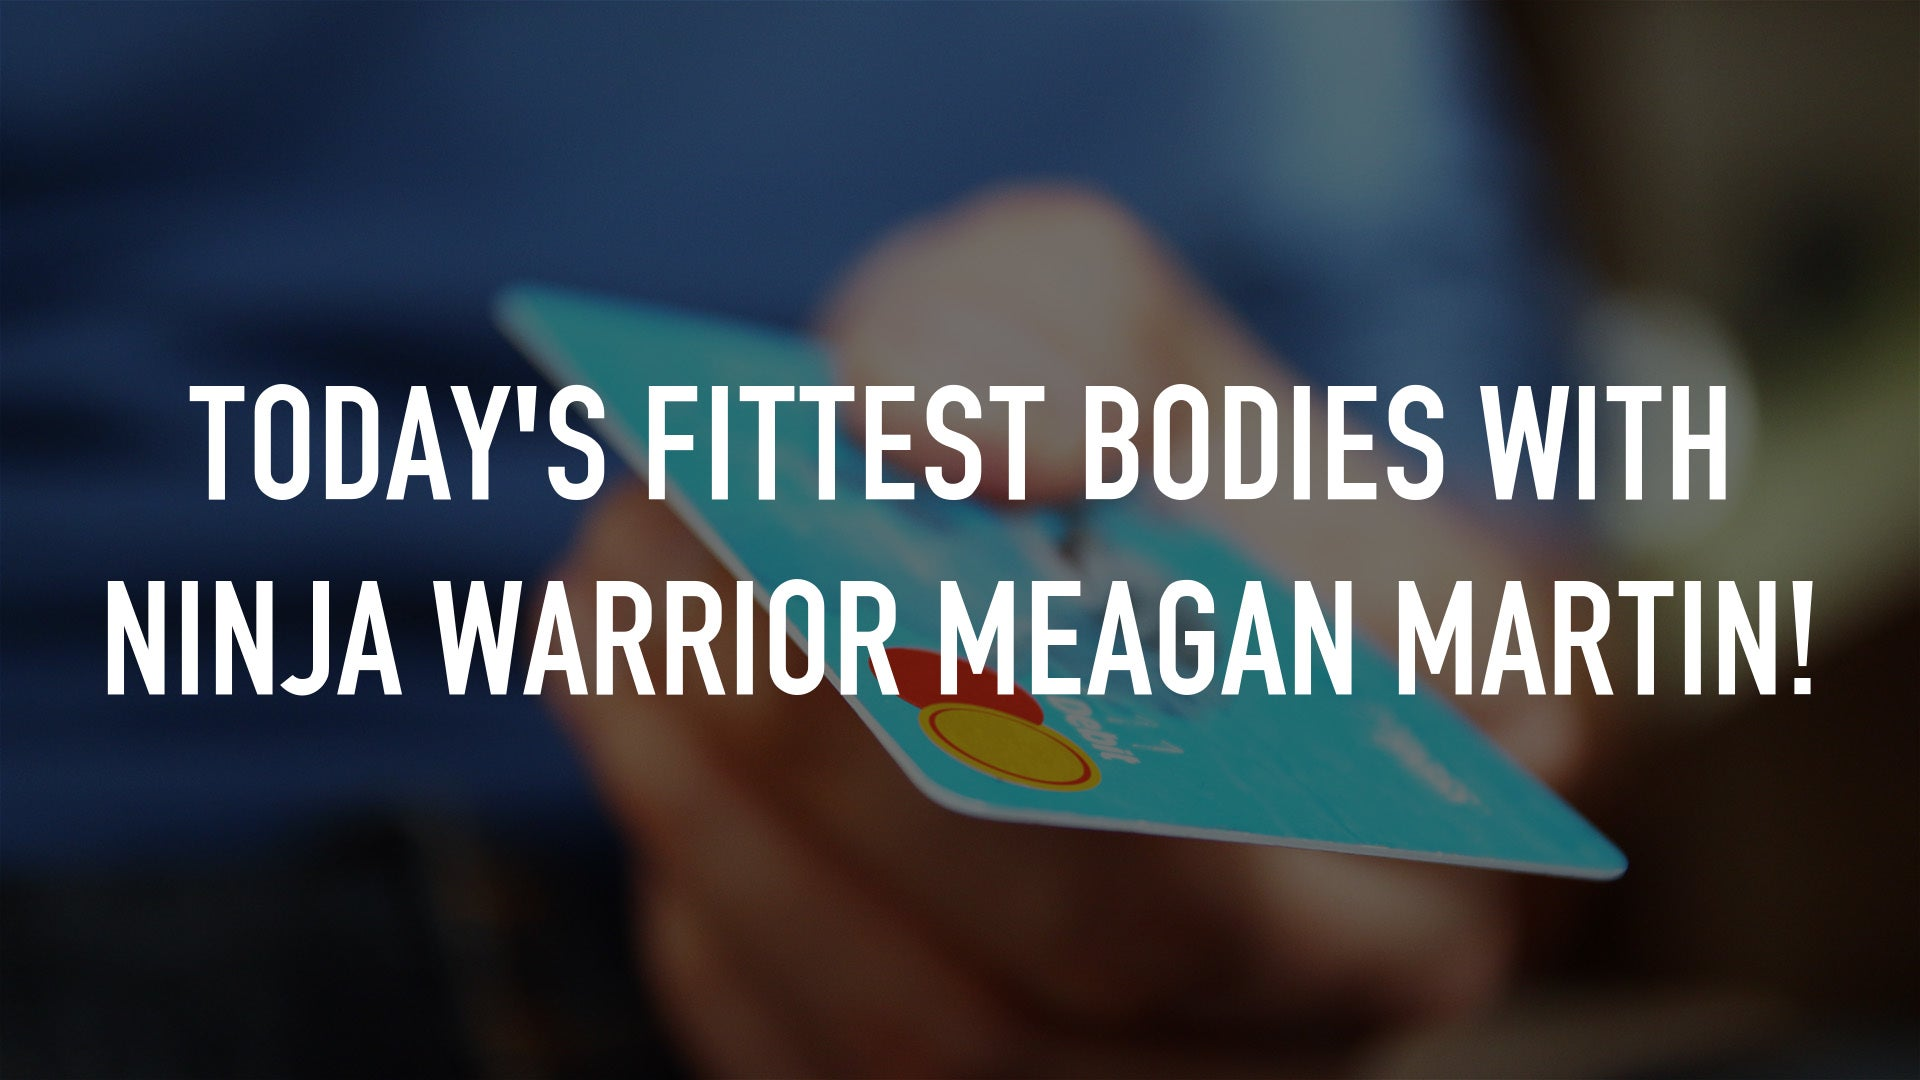 Today's Fittest Bodies with Ninja Warrior Meagan Martin!